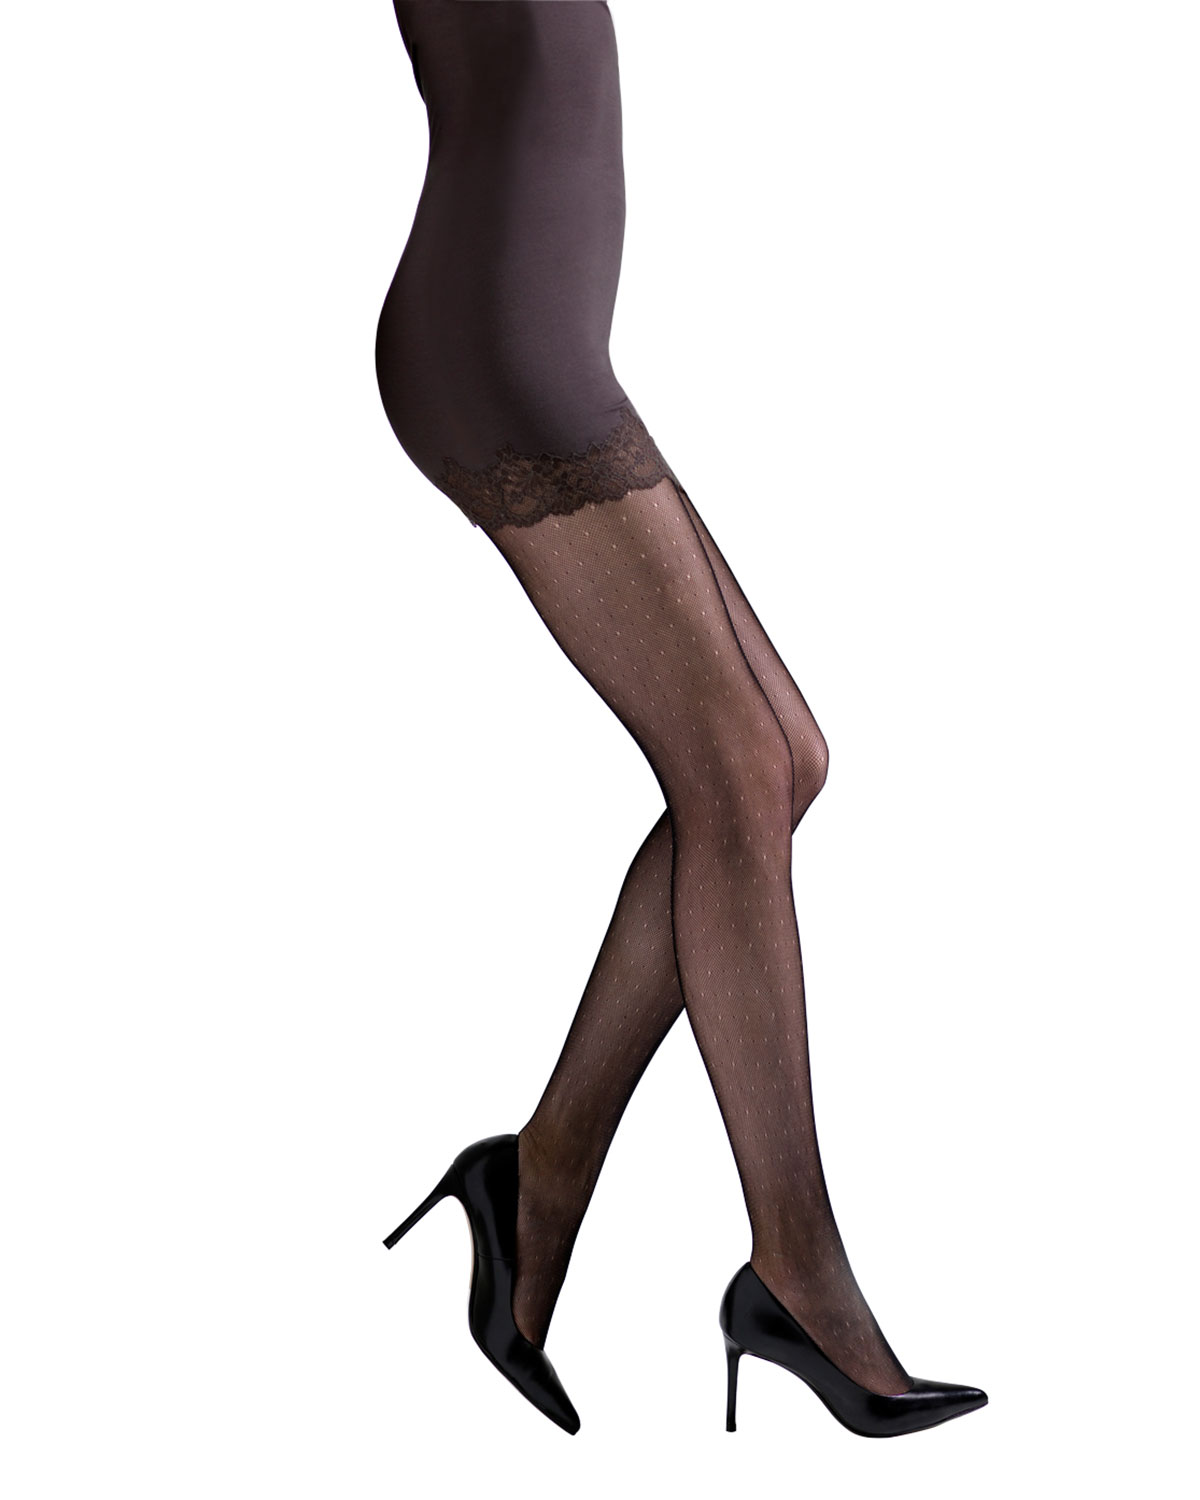 6e70ae4d59c Natori Bristles Lace Sheer Floral-Pattern Control-Top Tights ...